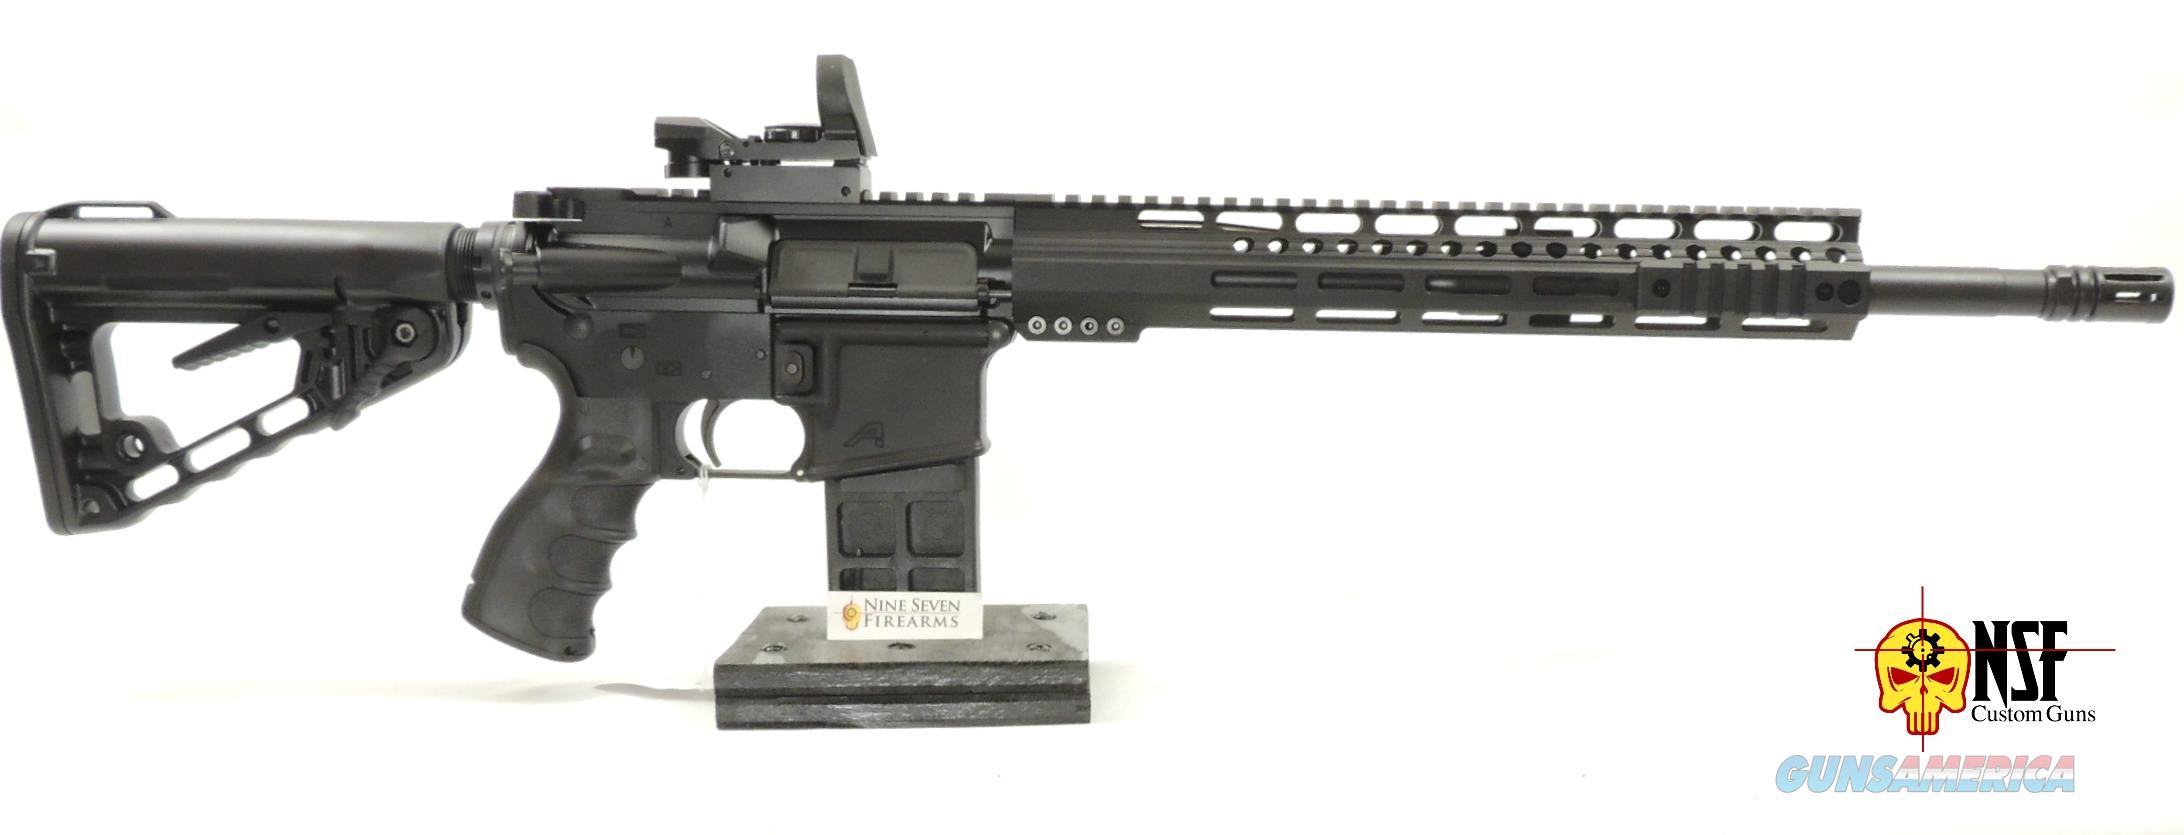 AR-15, Aero Precision, Free Float, Rogers, Red Dot, 150053  Guns > Rifles > AR-15 Rifles - Small Manufacturers > Complete Rifle